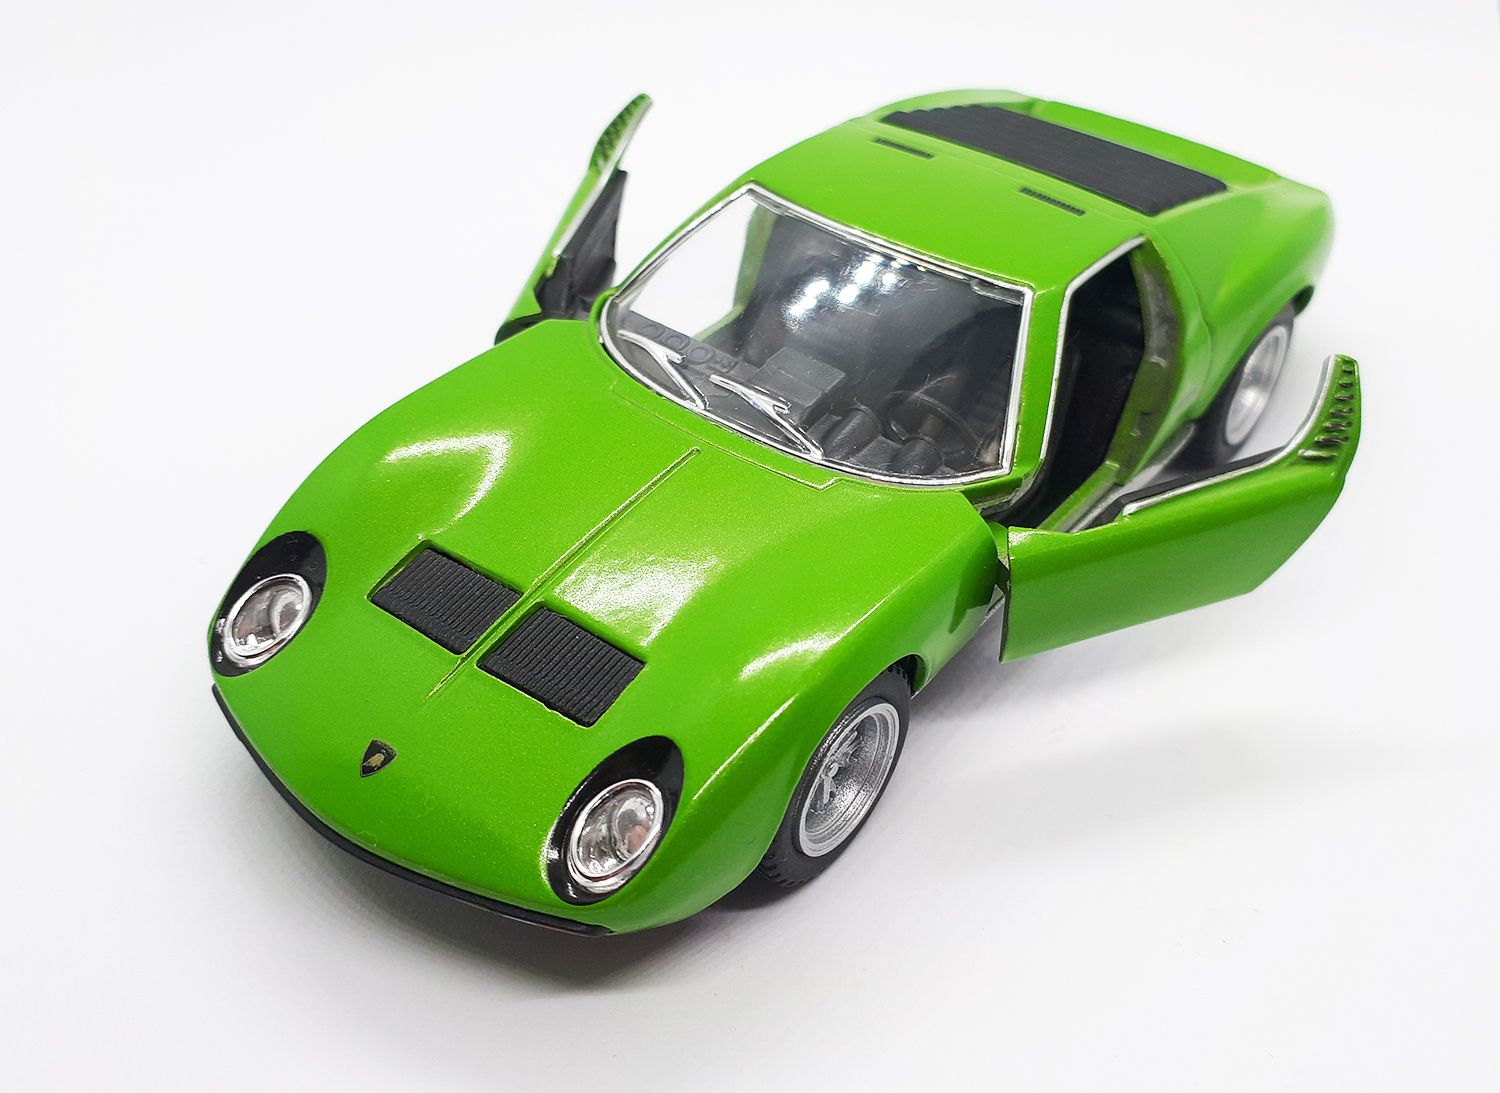 1971 Car Model Scale 1 34 Green Colour Manufacturer Kinsmart Modern